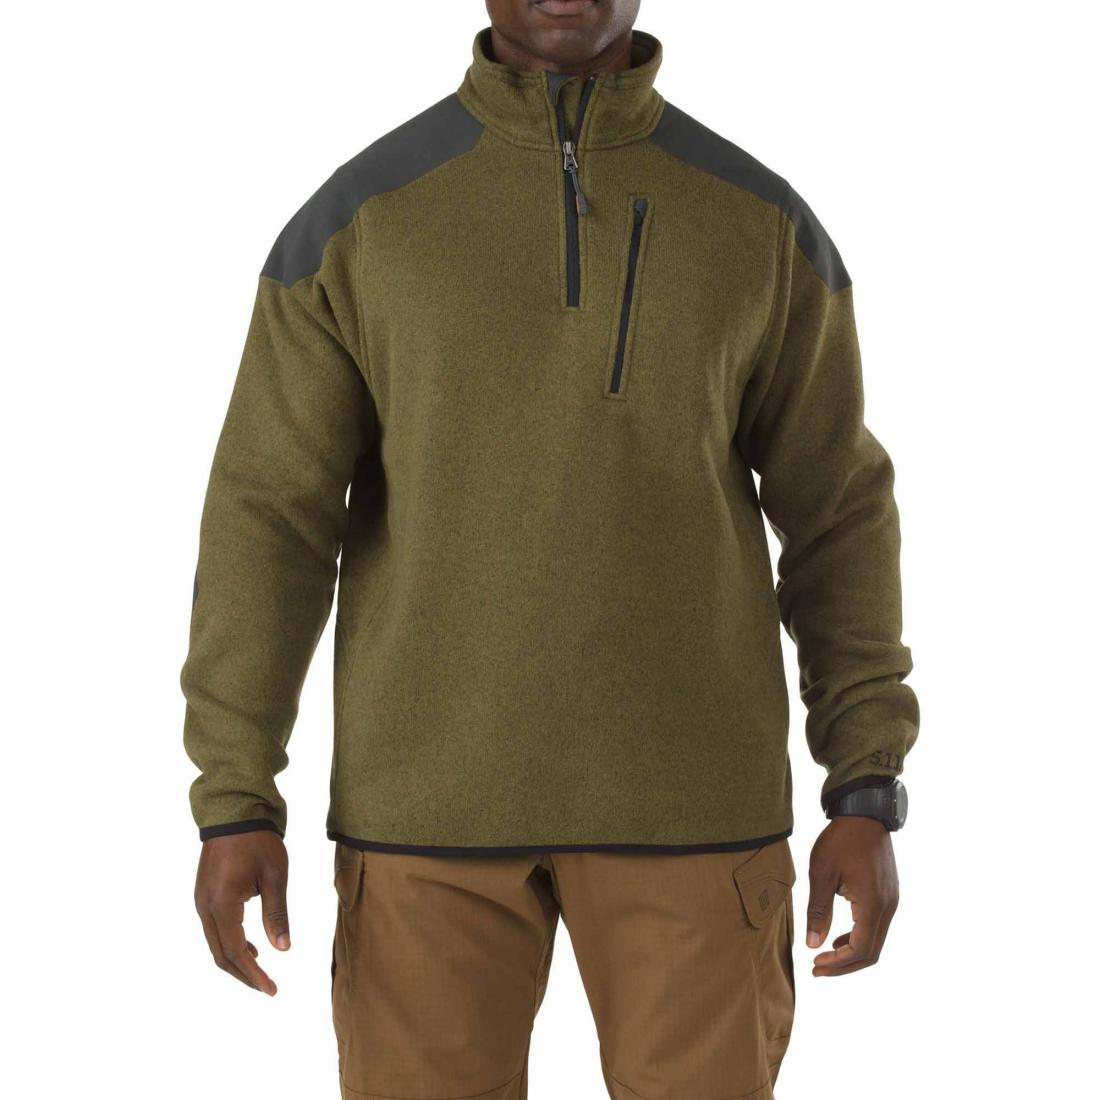 5.11 Tactical 72405 Men Tactical 1/4 Zip Sweater Field Green